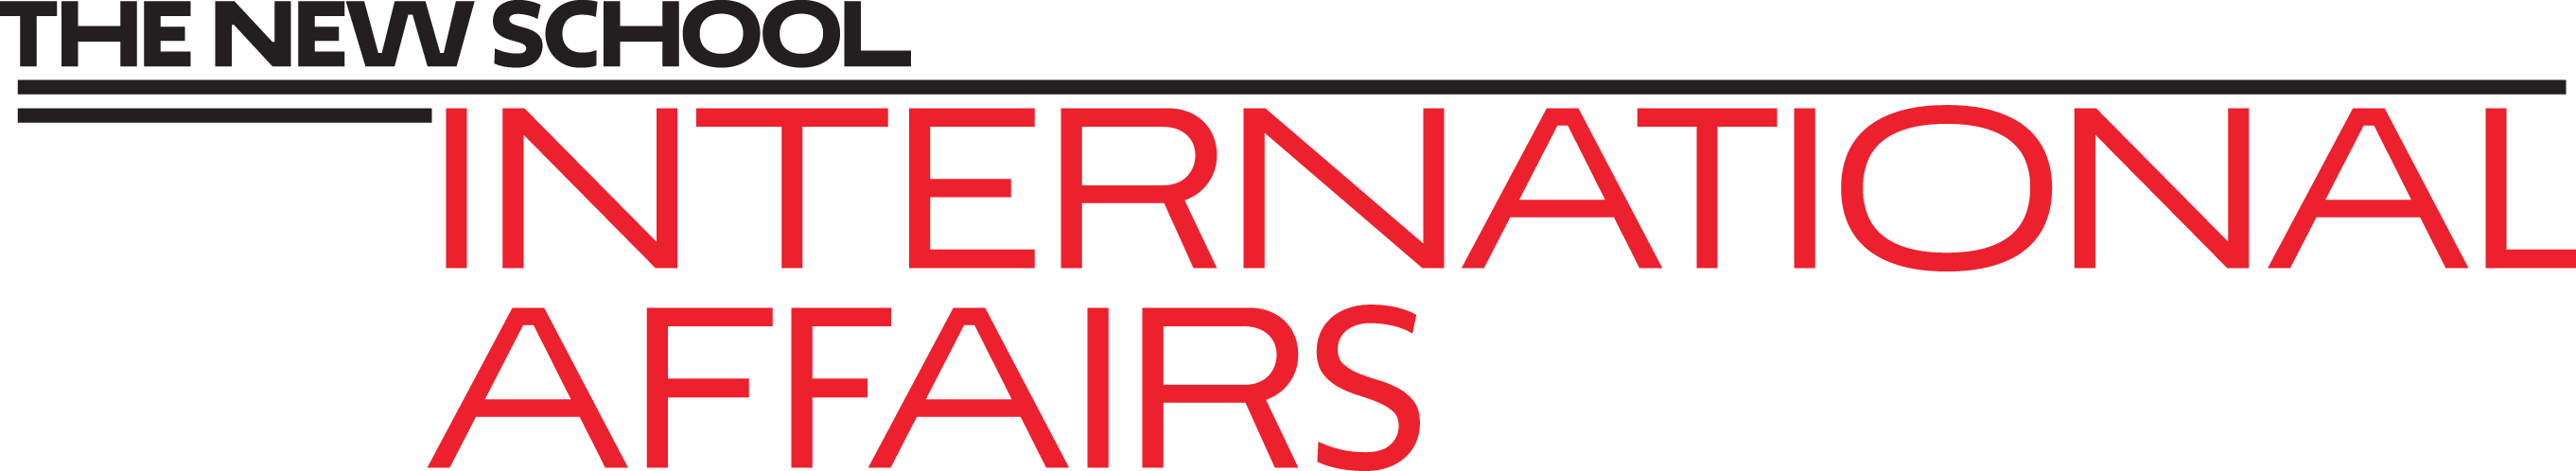 InternationalAffairs_Logo1_Large_RGB.png